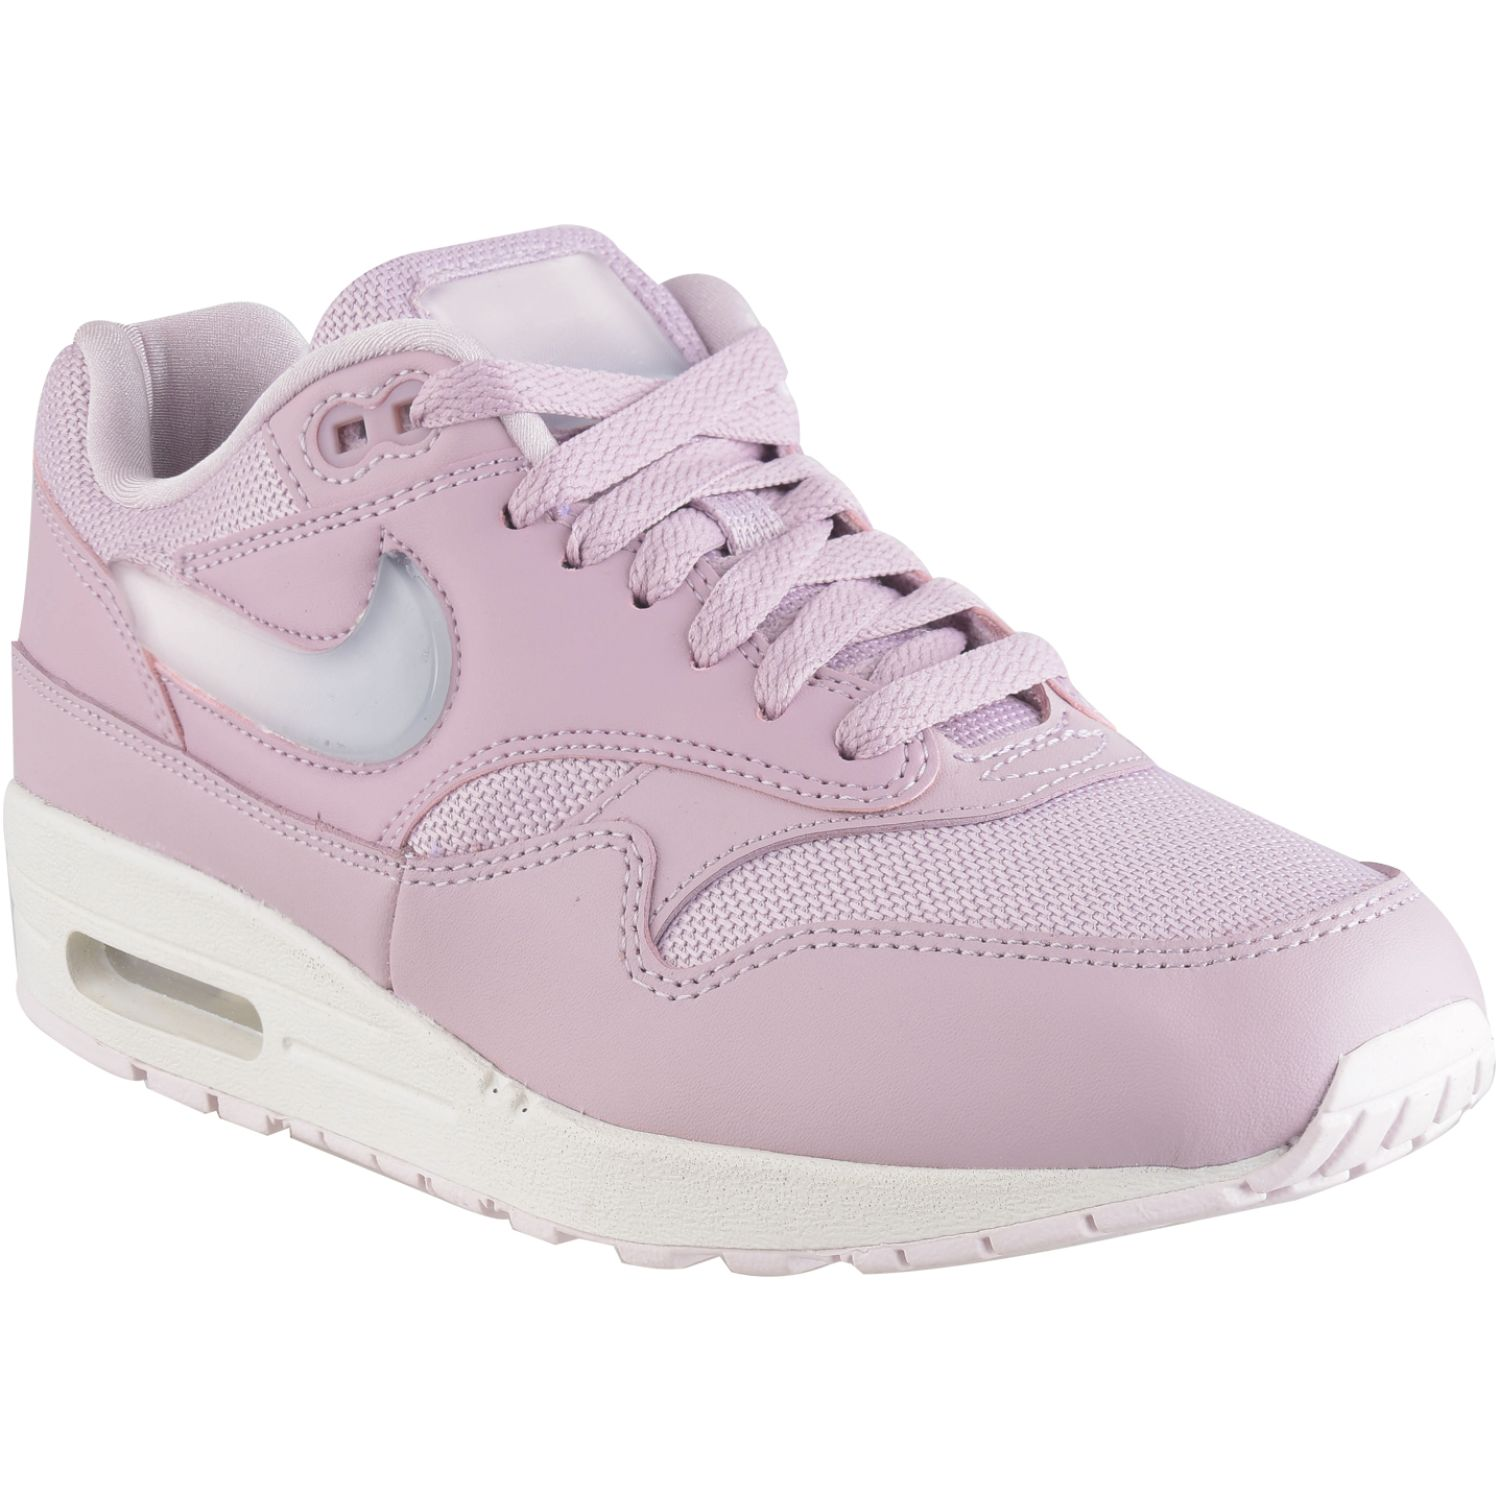 Nike w air max 1 jp Rosado / blanco Walking